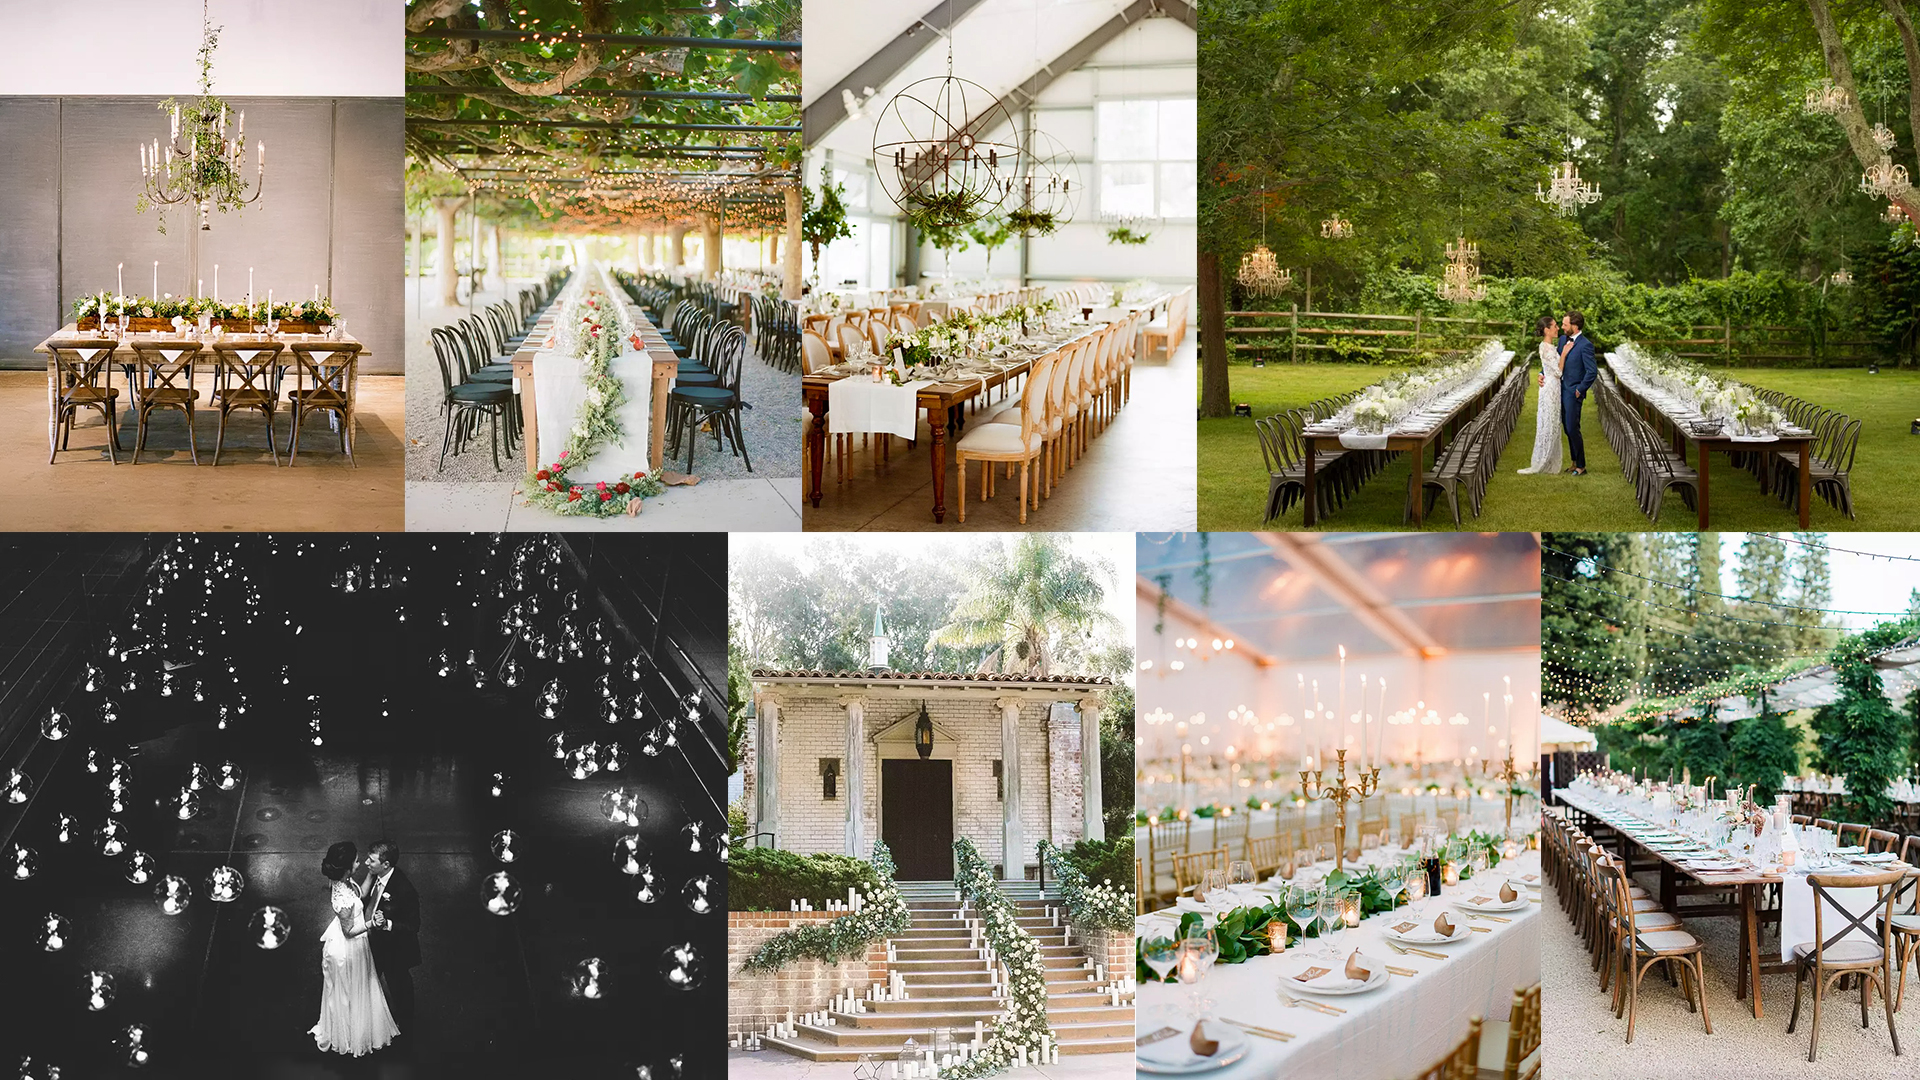 24 Unique Wedding Lighting Ideas To Make Your Day Shine – Like, Literally